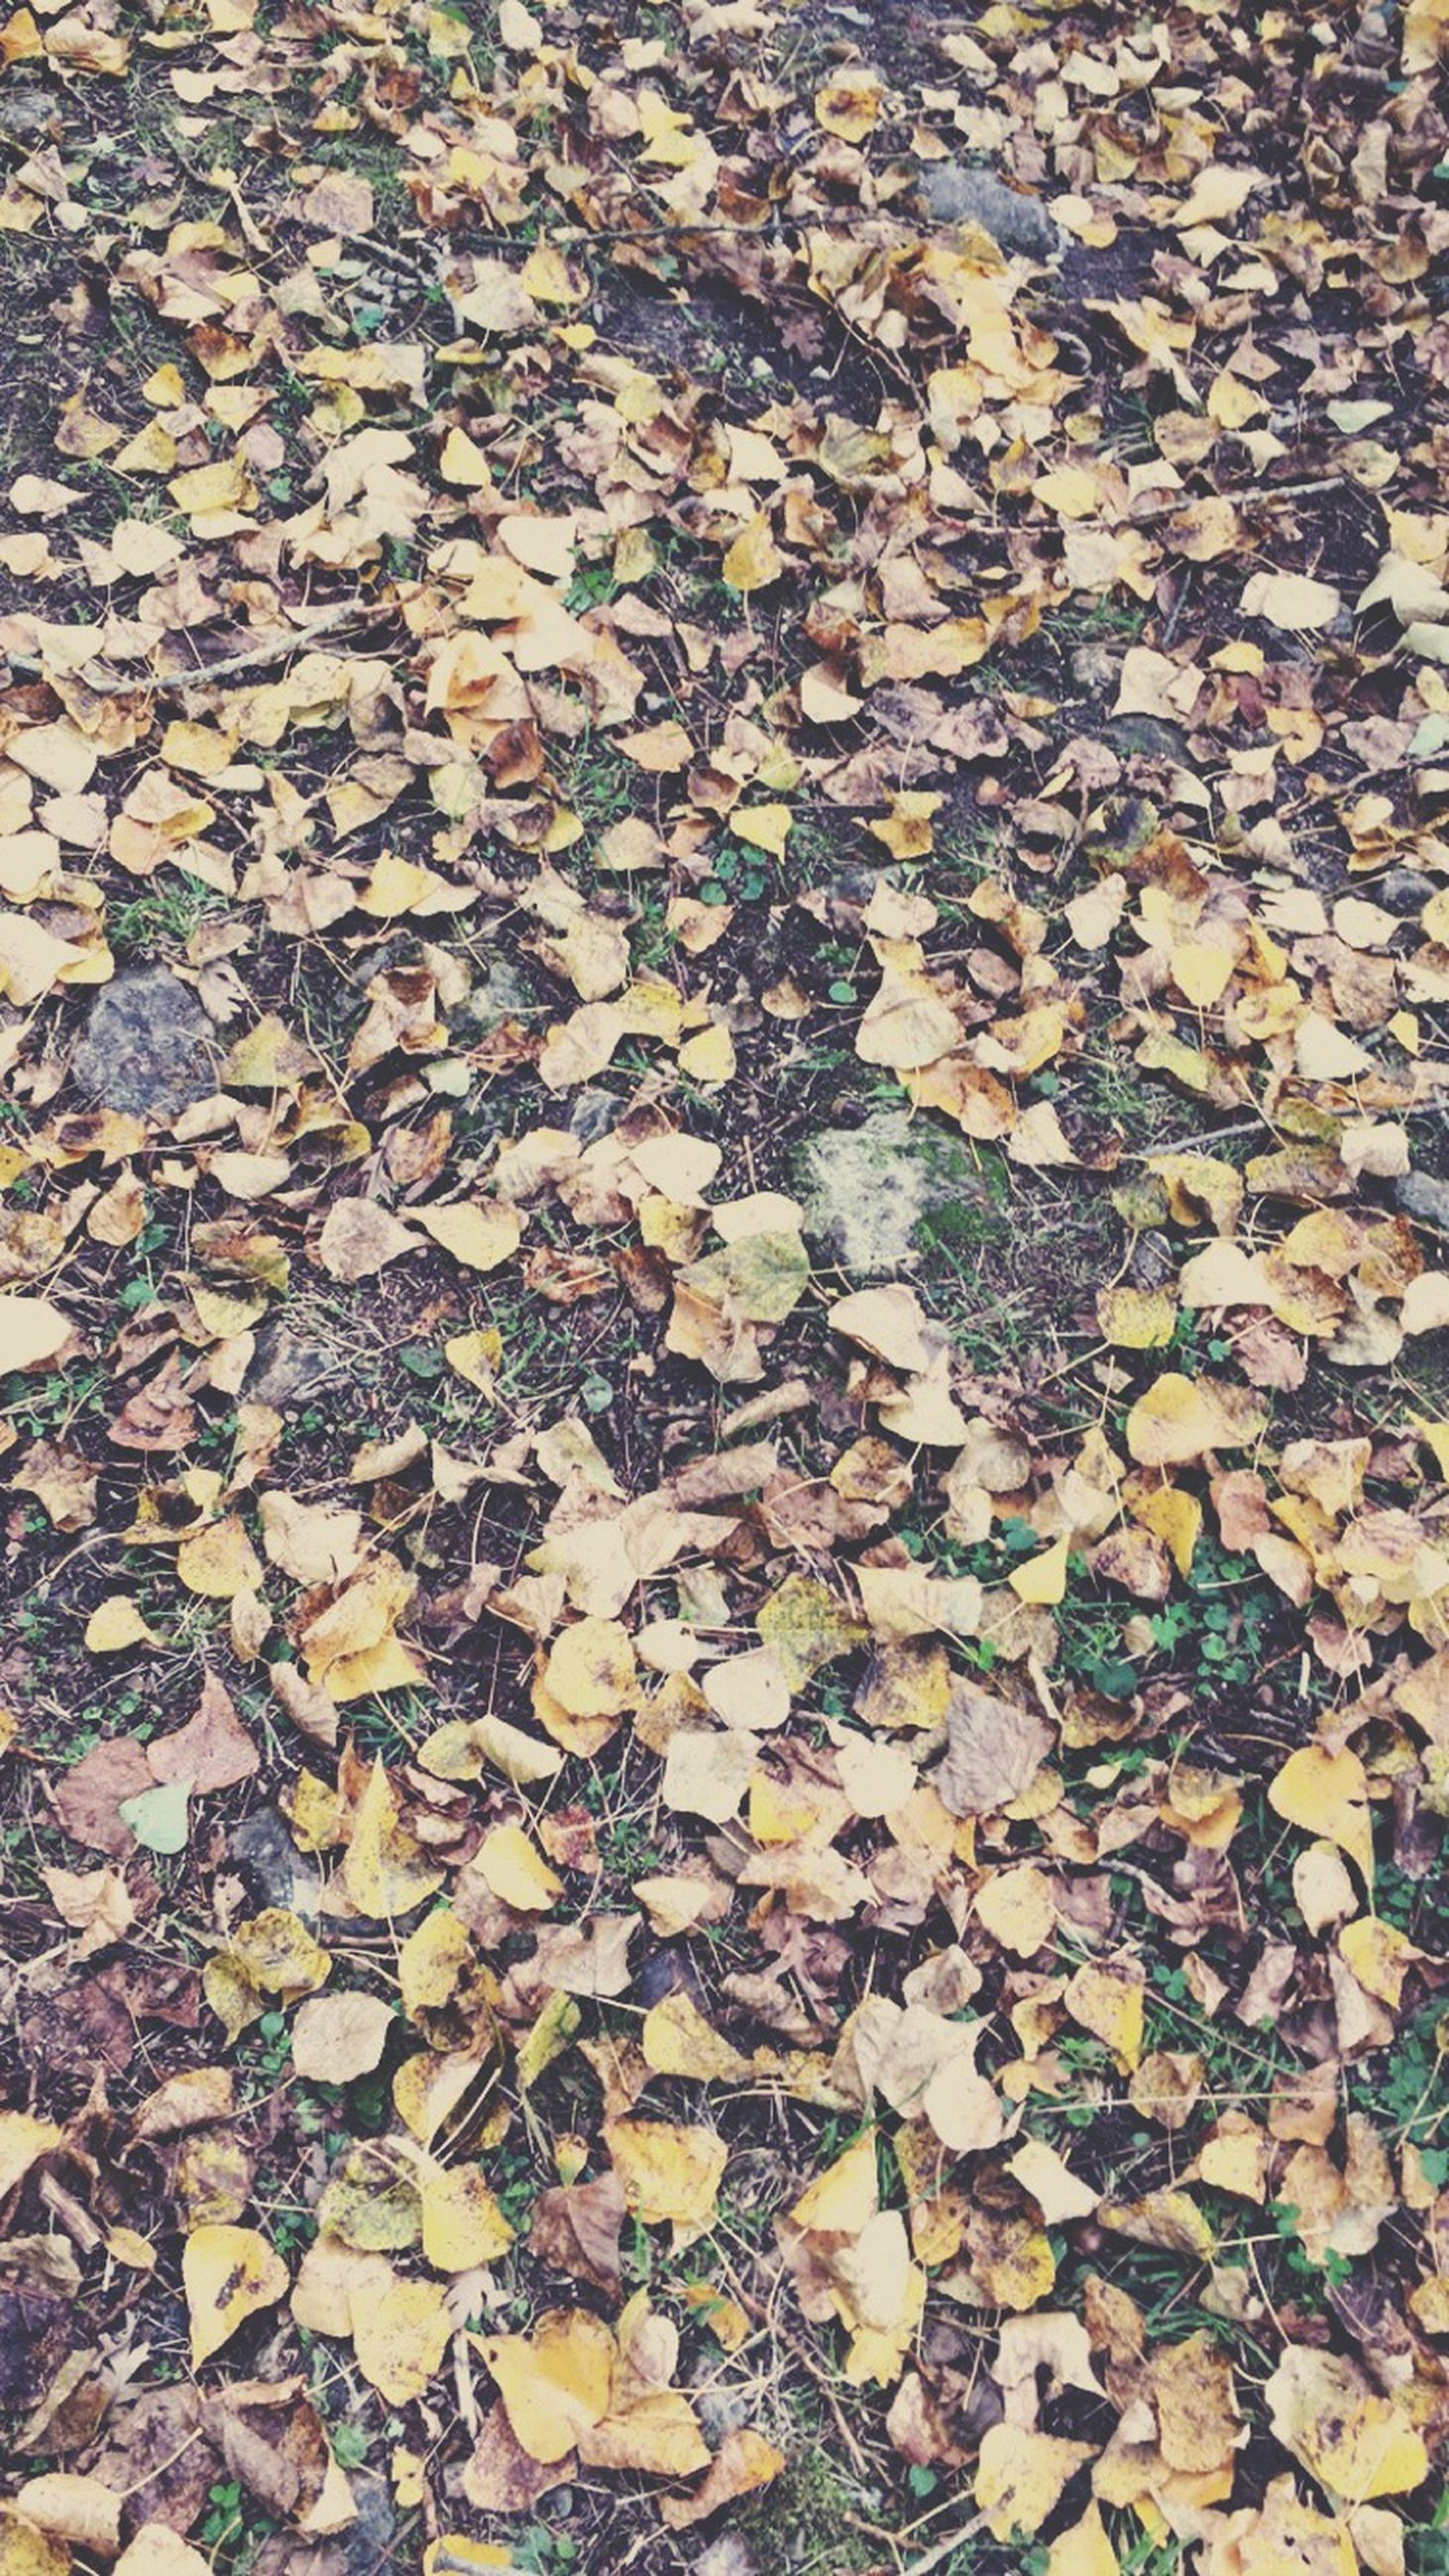 autumn, leaf, high angle view, change, full frame, dry, backgrounds, season, fallen, leaves, nature, abundance, day, outdoors, tranquility, stone - object, no people, field, textured, falling